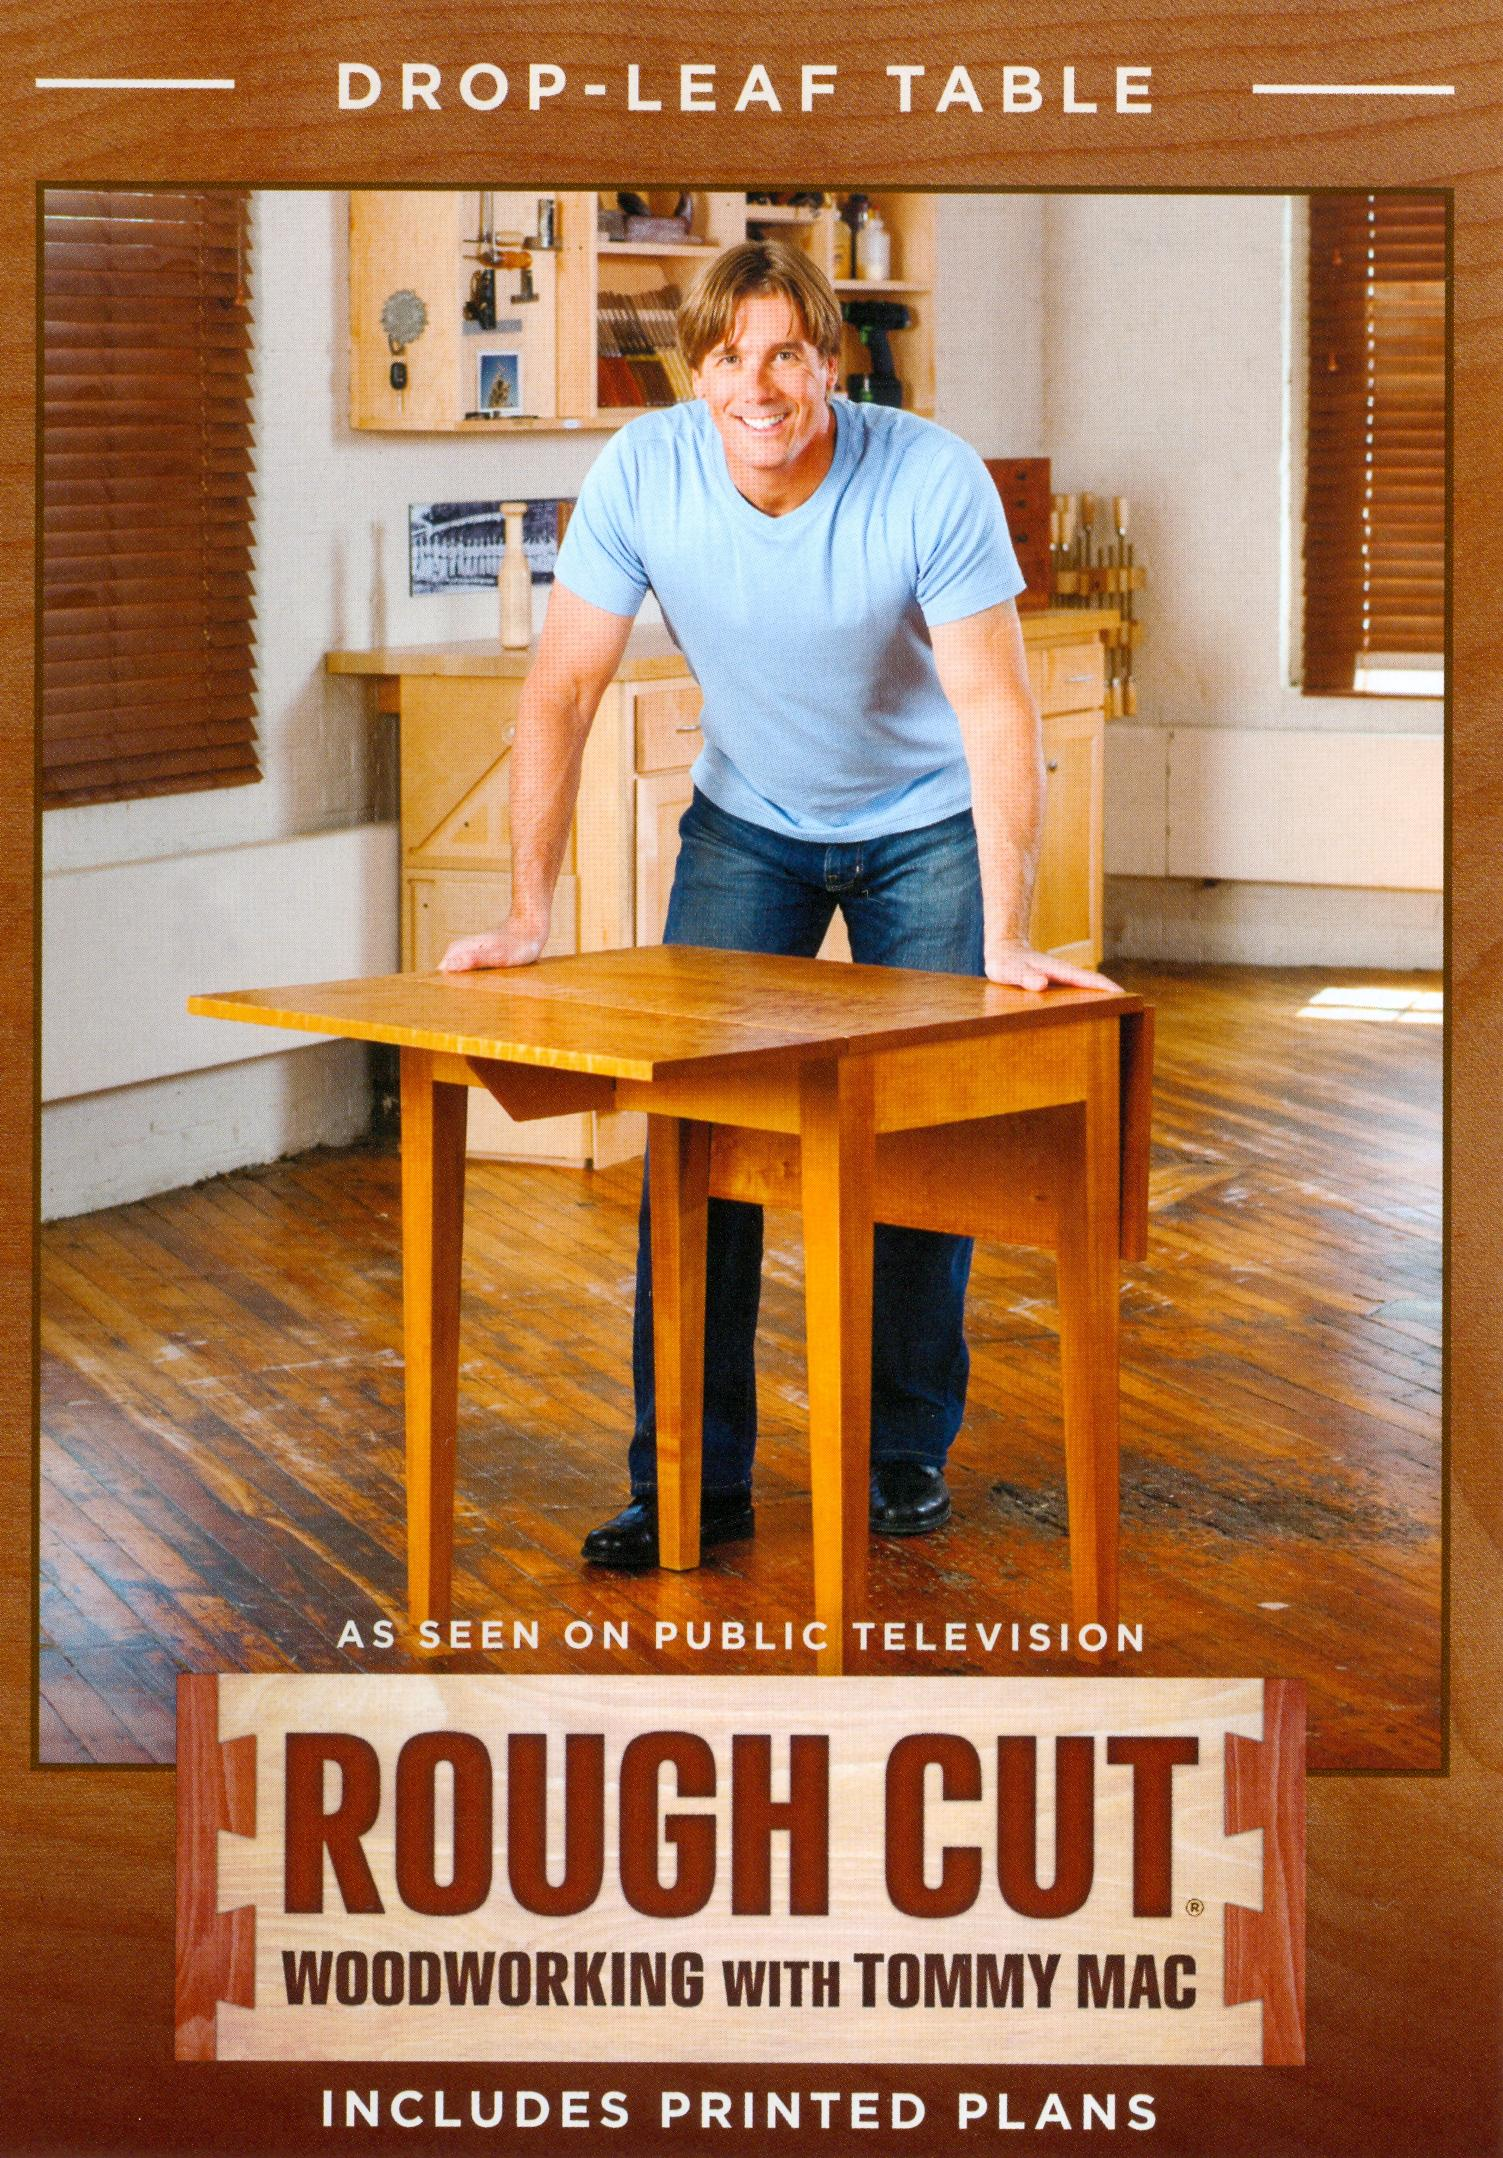 Rough Cut - Woodworking with Tommy Mac: Drop-Leaf Table